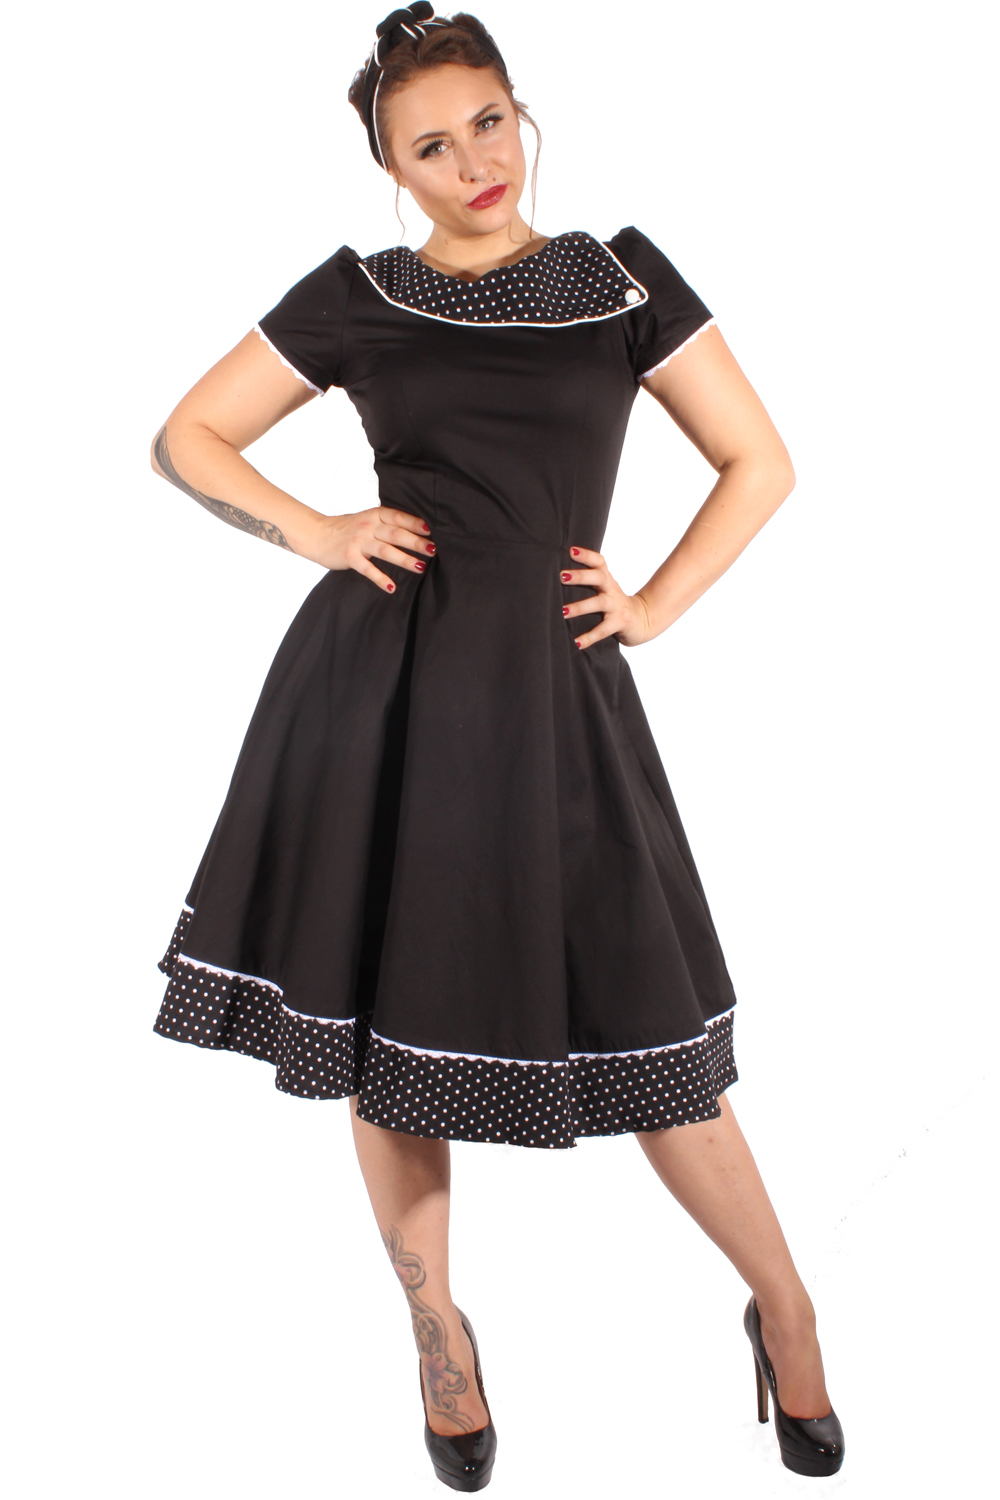 50er retro Pin Up Polka Dots Petticoatkleid Puffärmel Swing Kleid